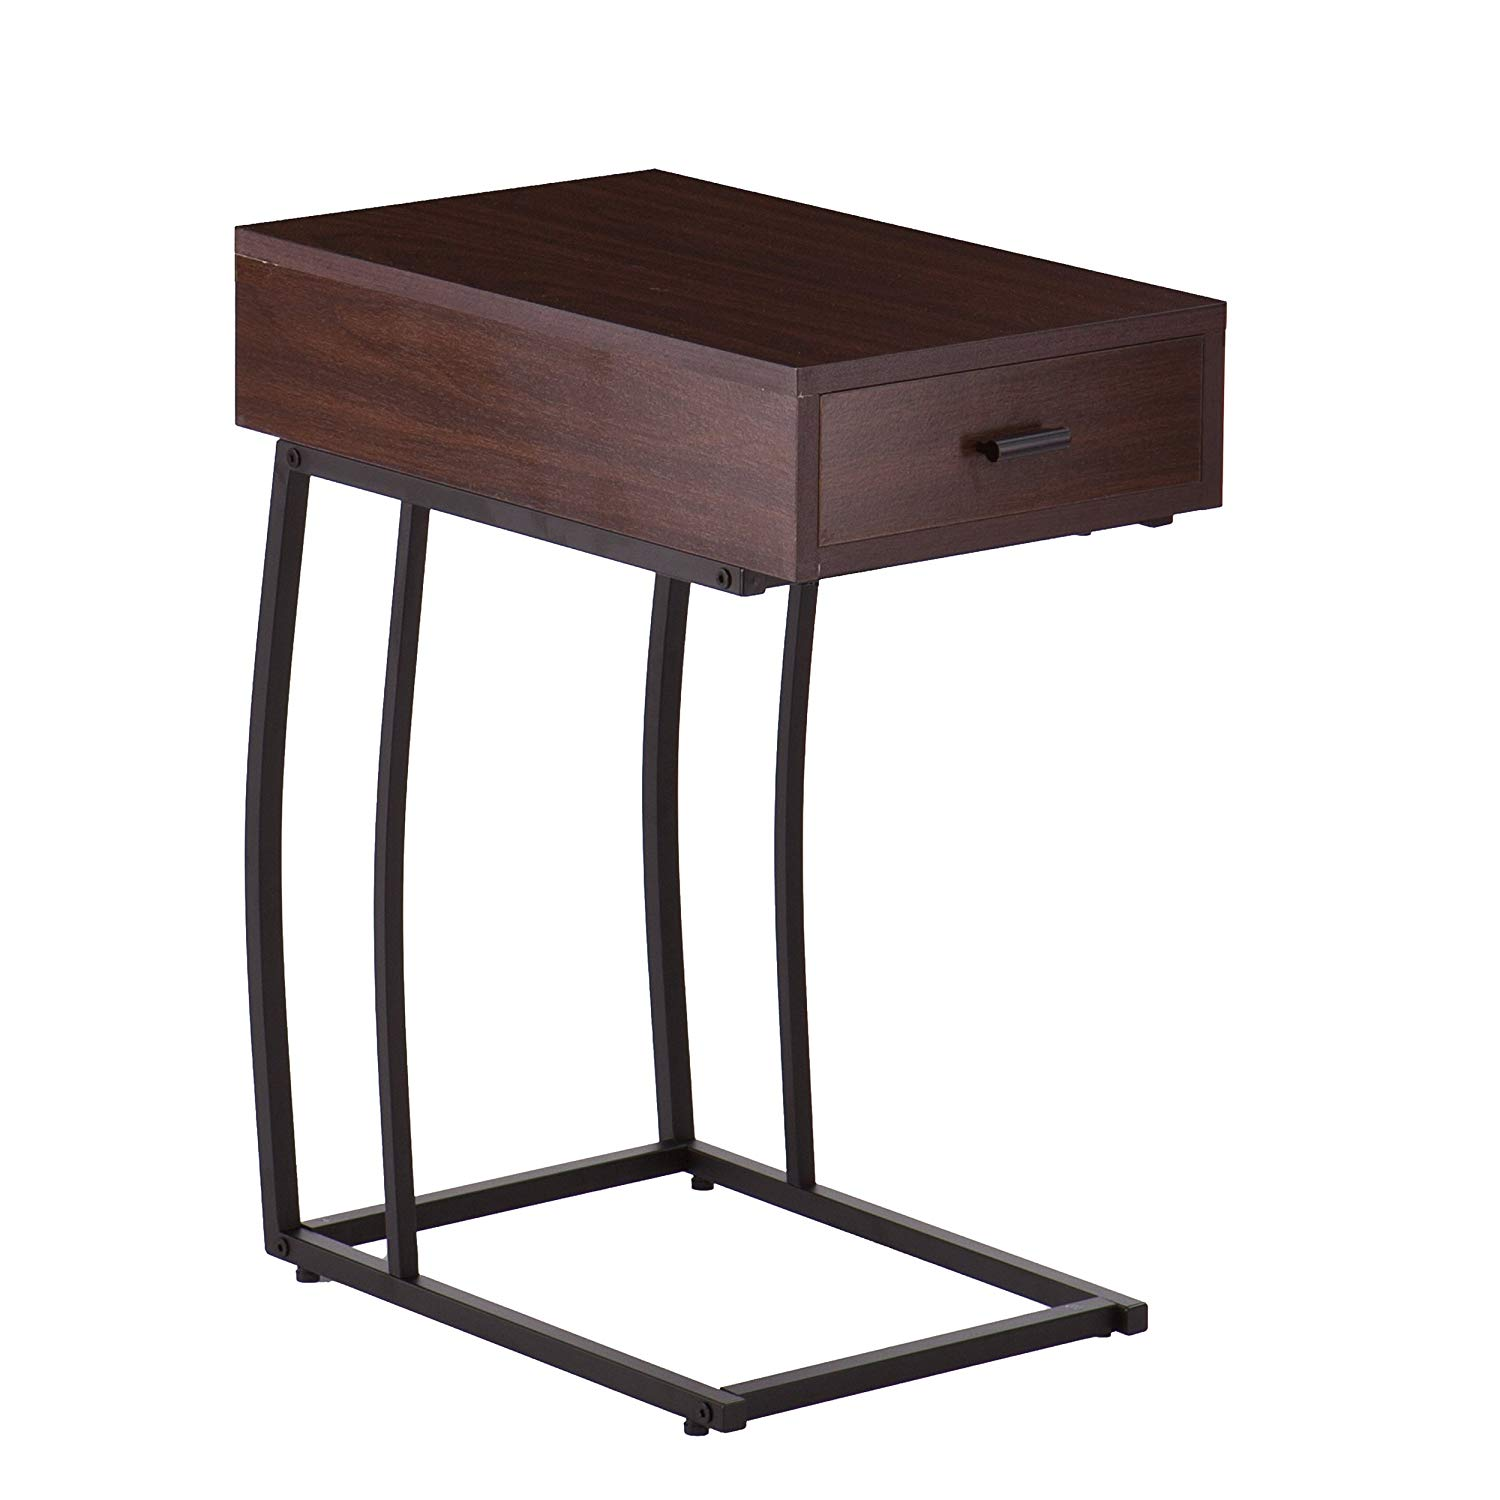 porten side table power usb kitchen dining accent with strip coffee yard and chairs desk small thin room tables for spaces bedroom end modern lamp safavieh kiley lighting lamps